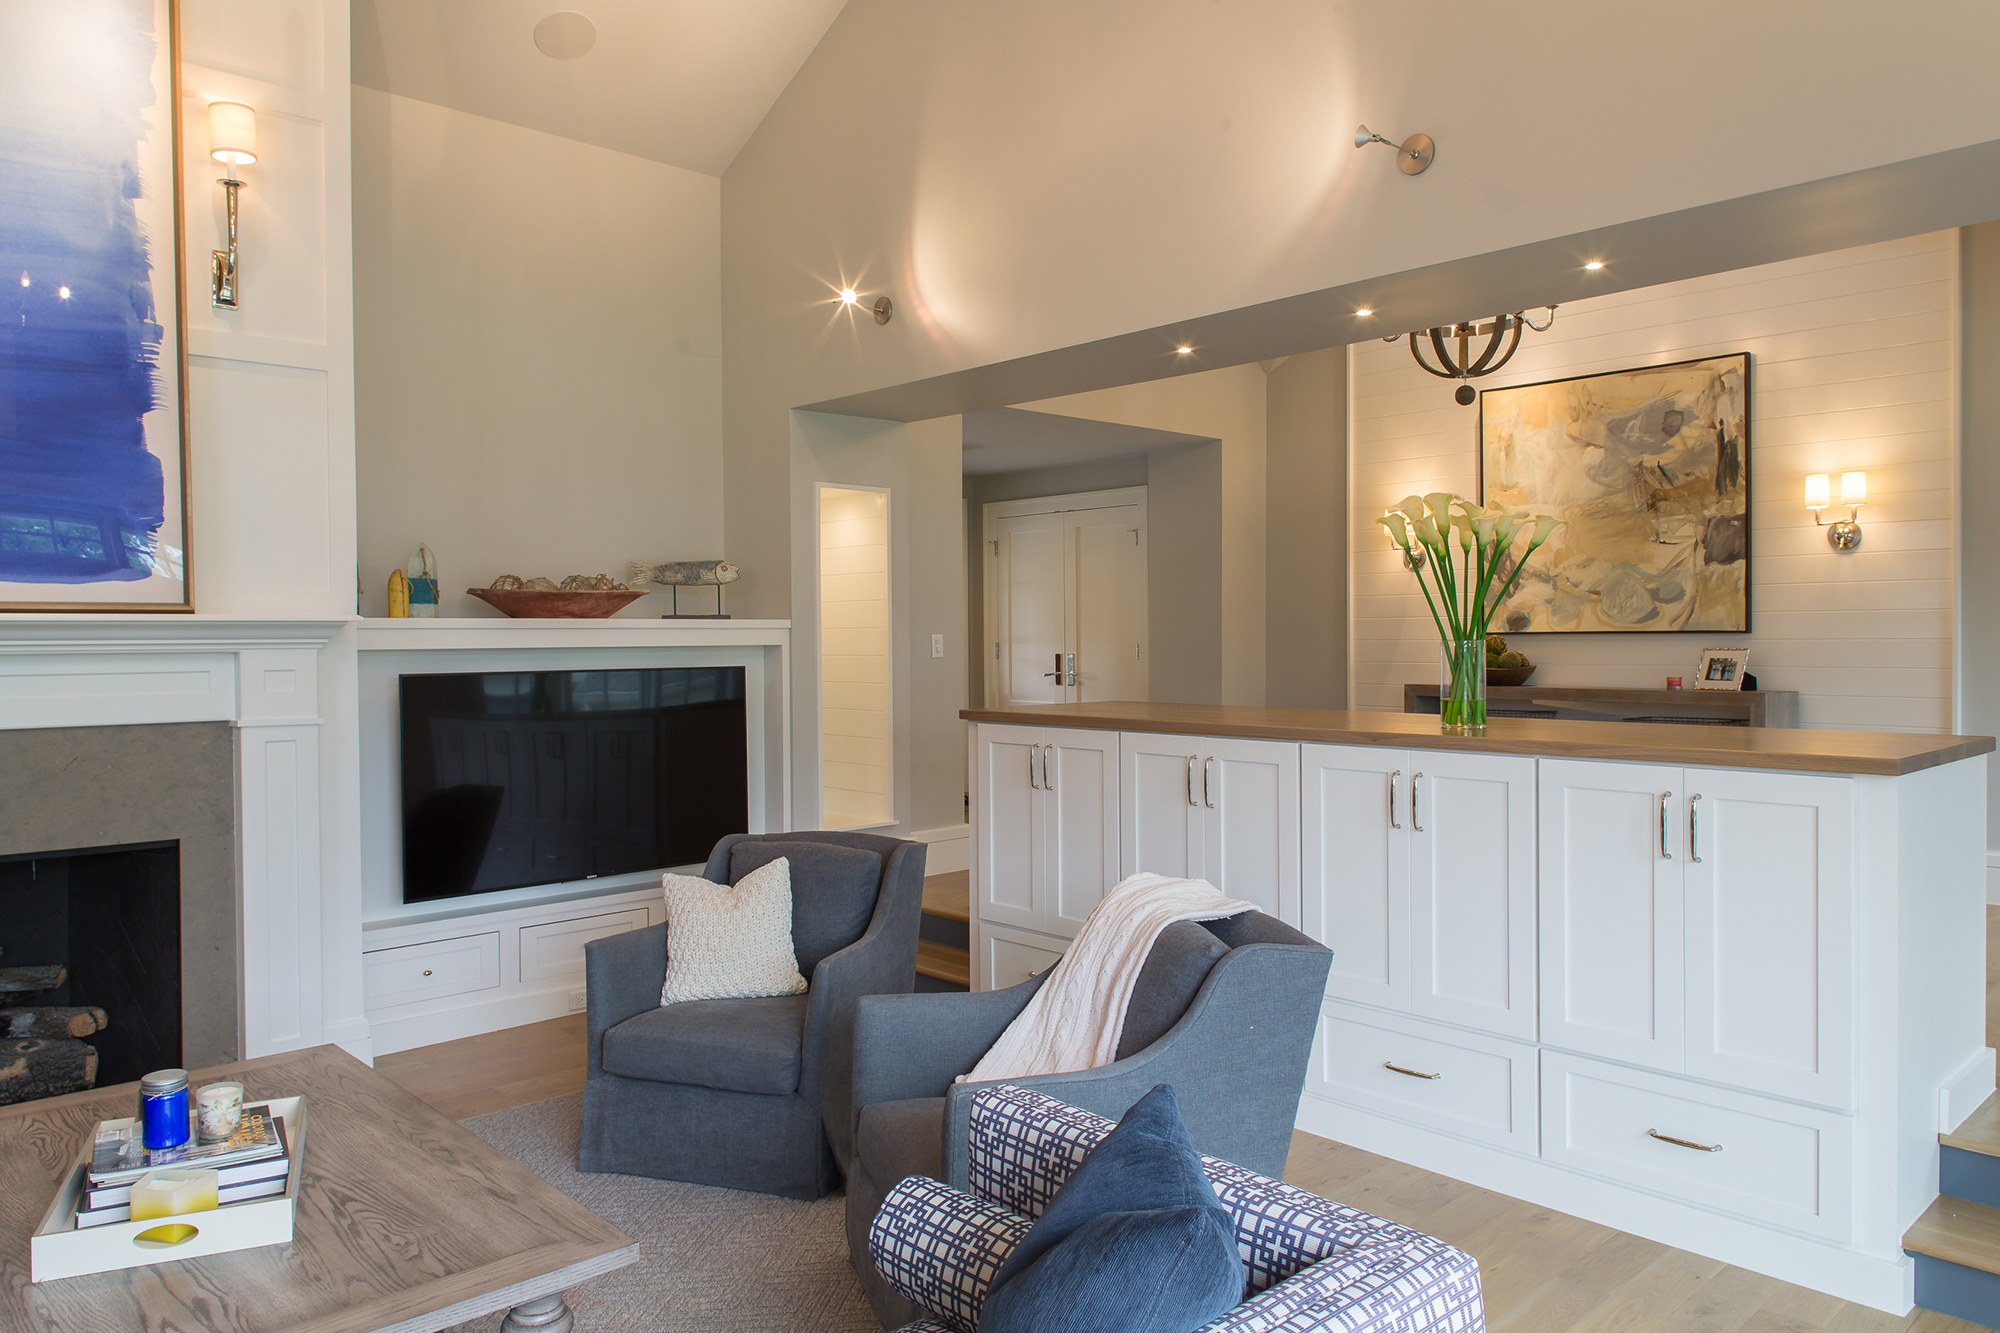 Painted Family Room Cabinets in White by Showplace Cabinetry - View 3